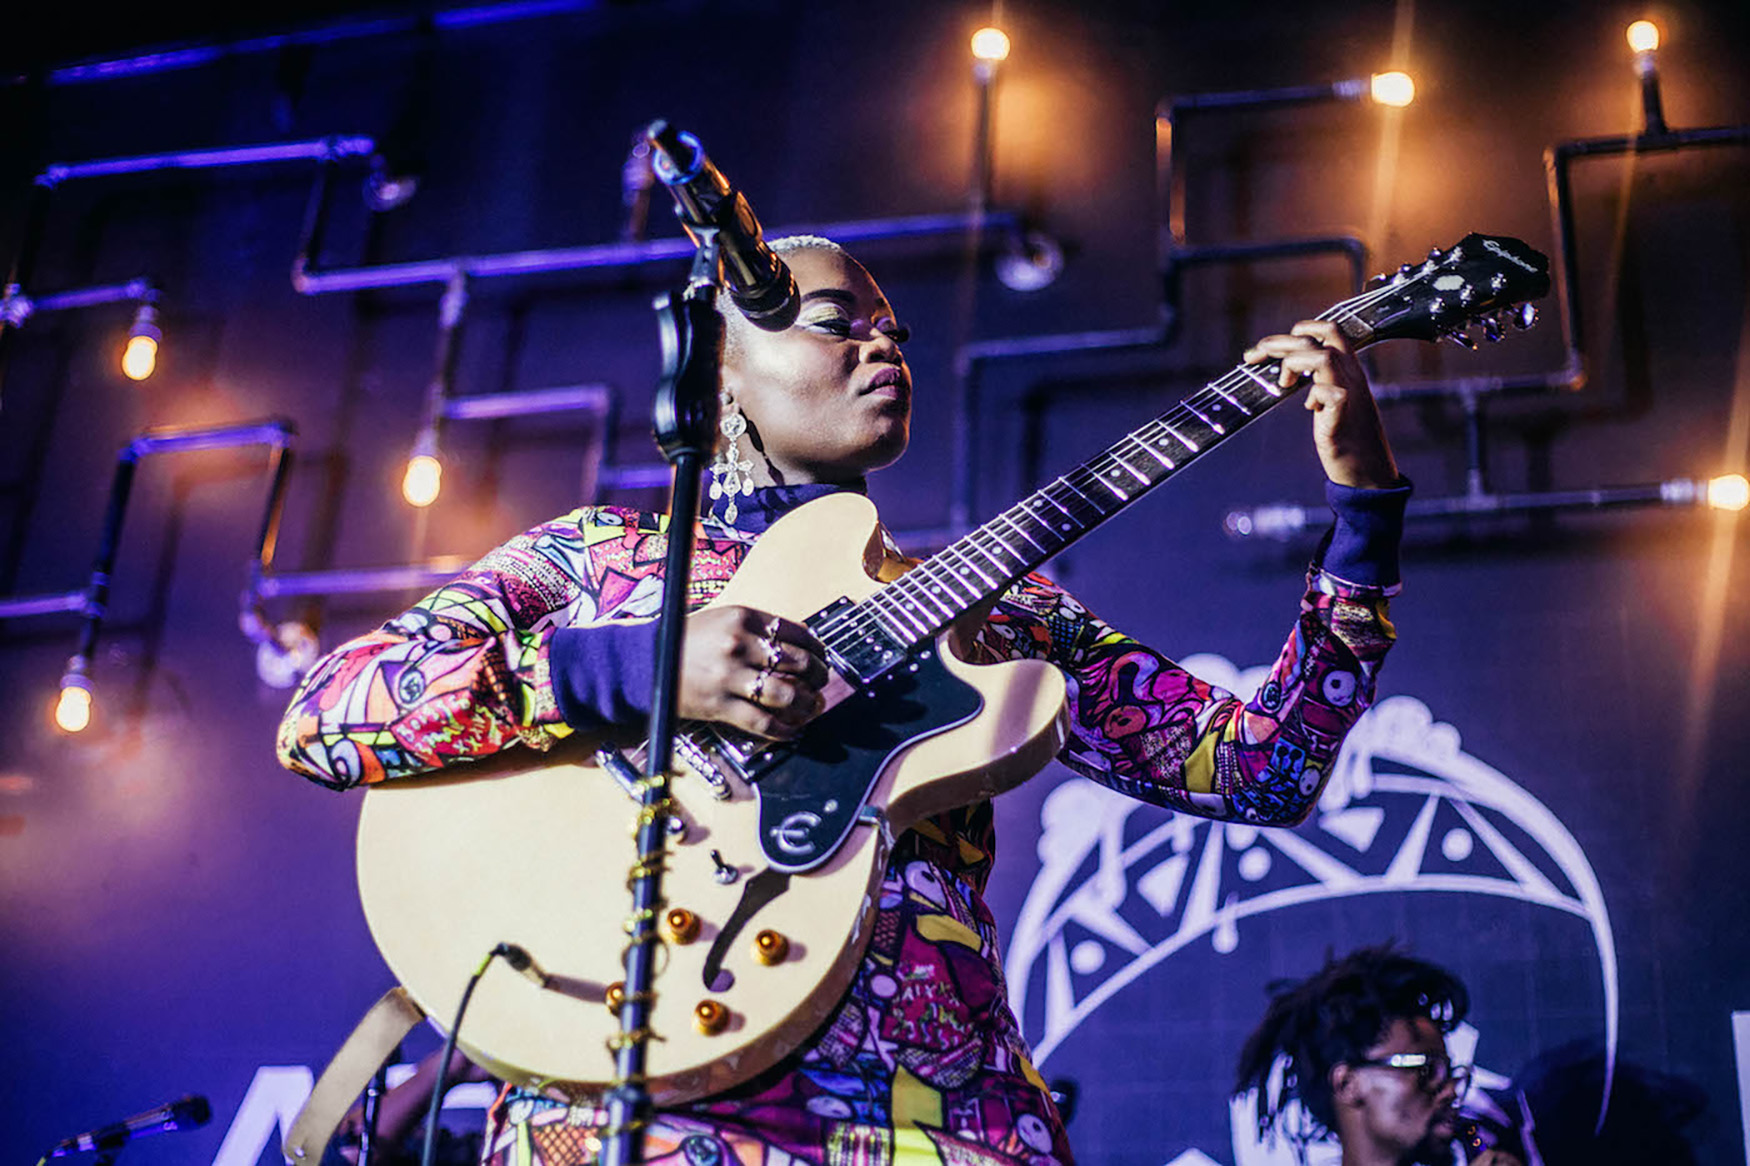 25 October 2018: Zoë Modiga performs at Afrobru in Maboneng. (Photograph by Sabelo Mkhabela)